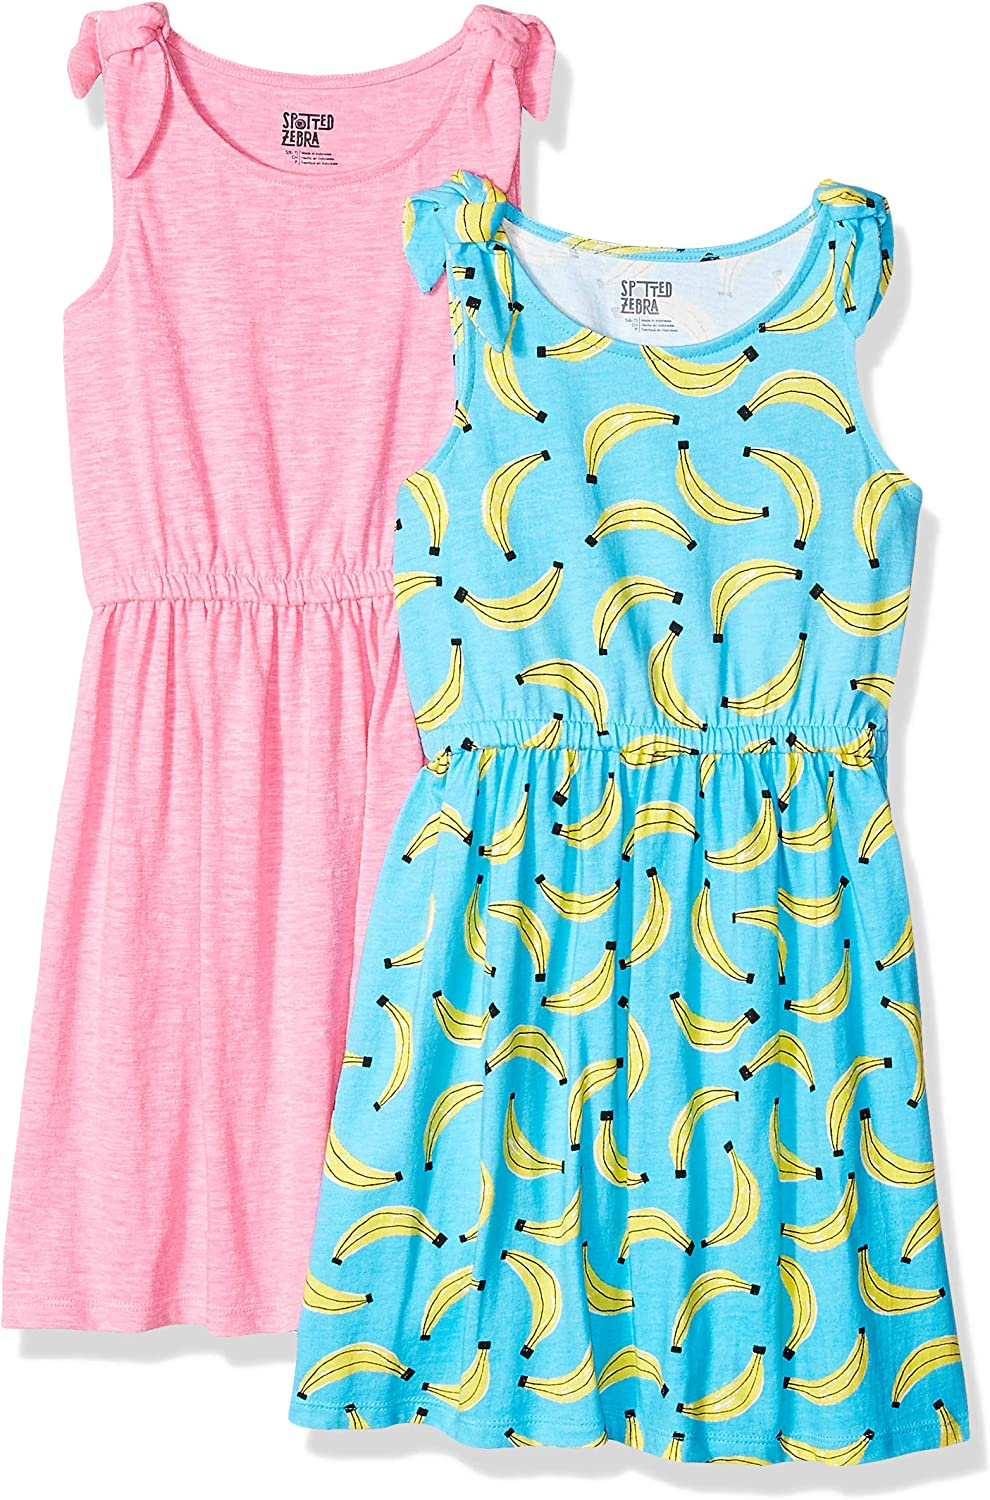 Spotted Zebra Girls 2-Pack Knit Sleeveless Knot Shoulder Dresses